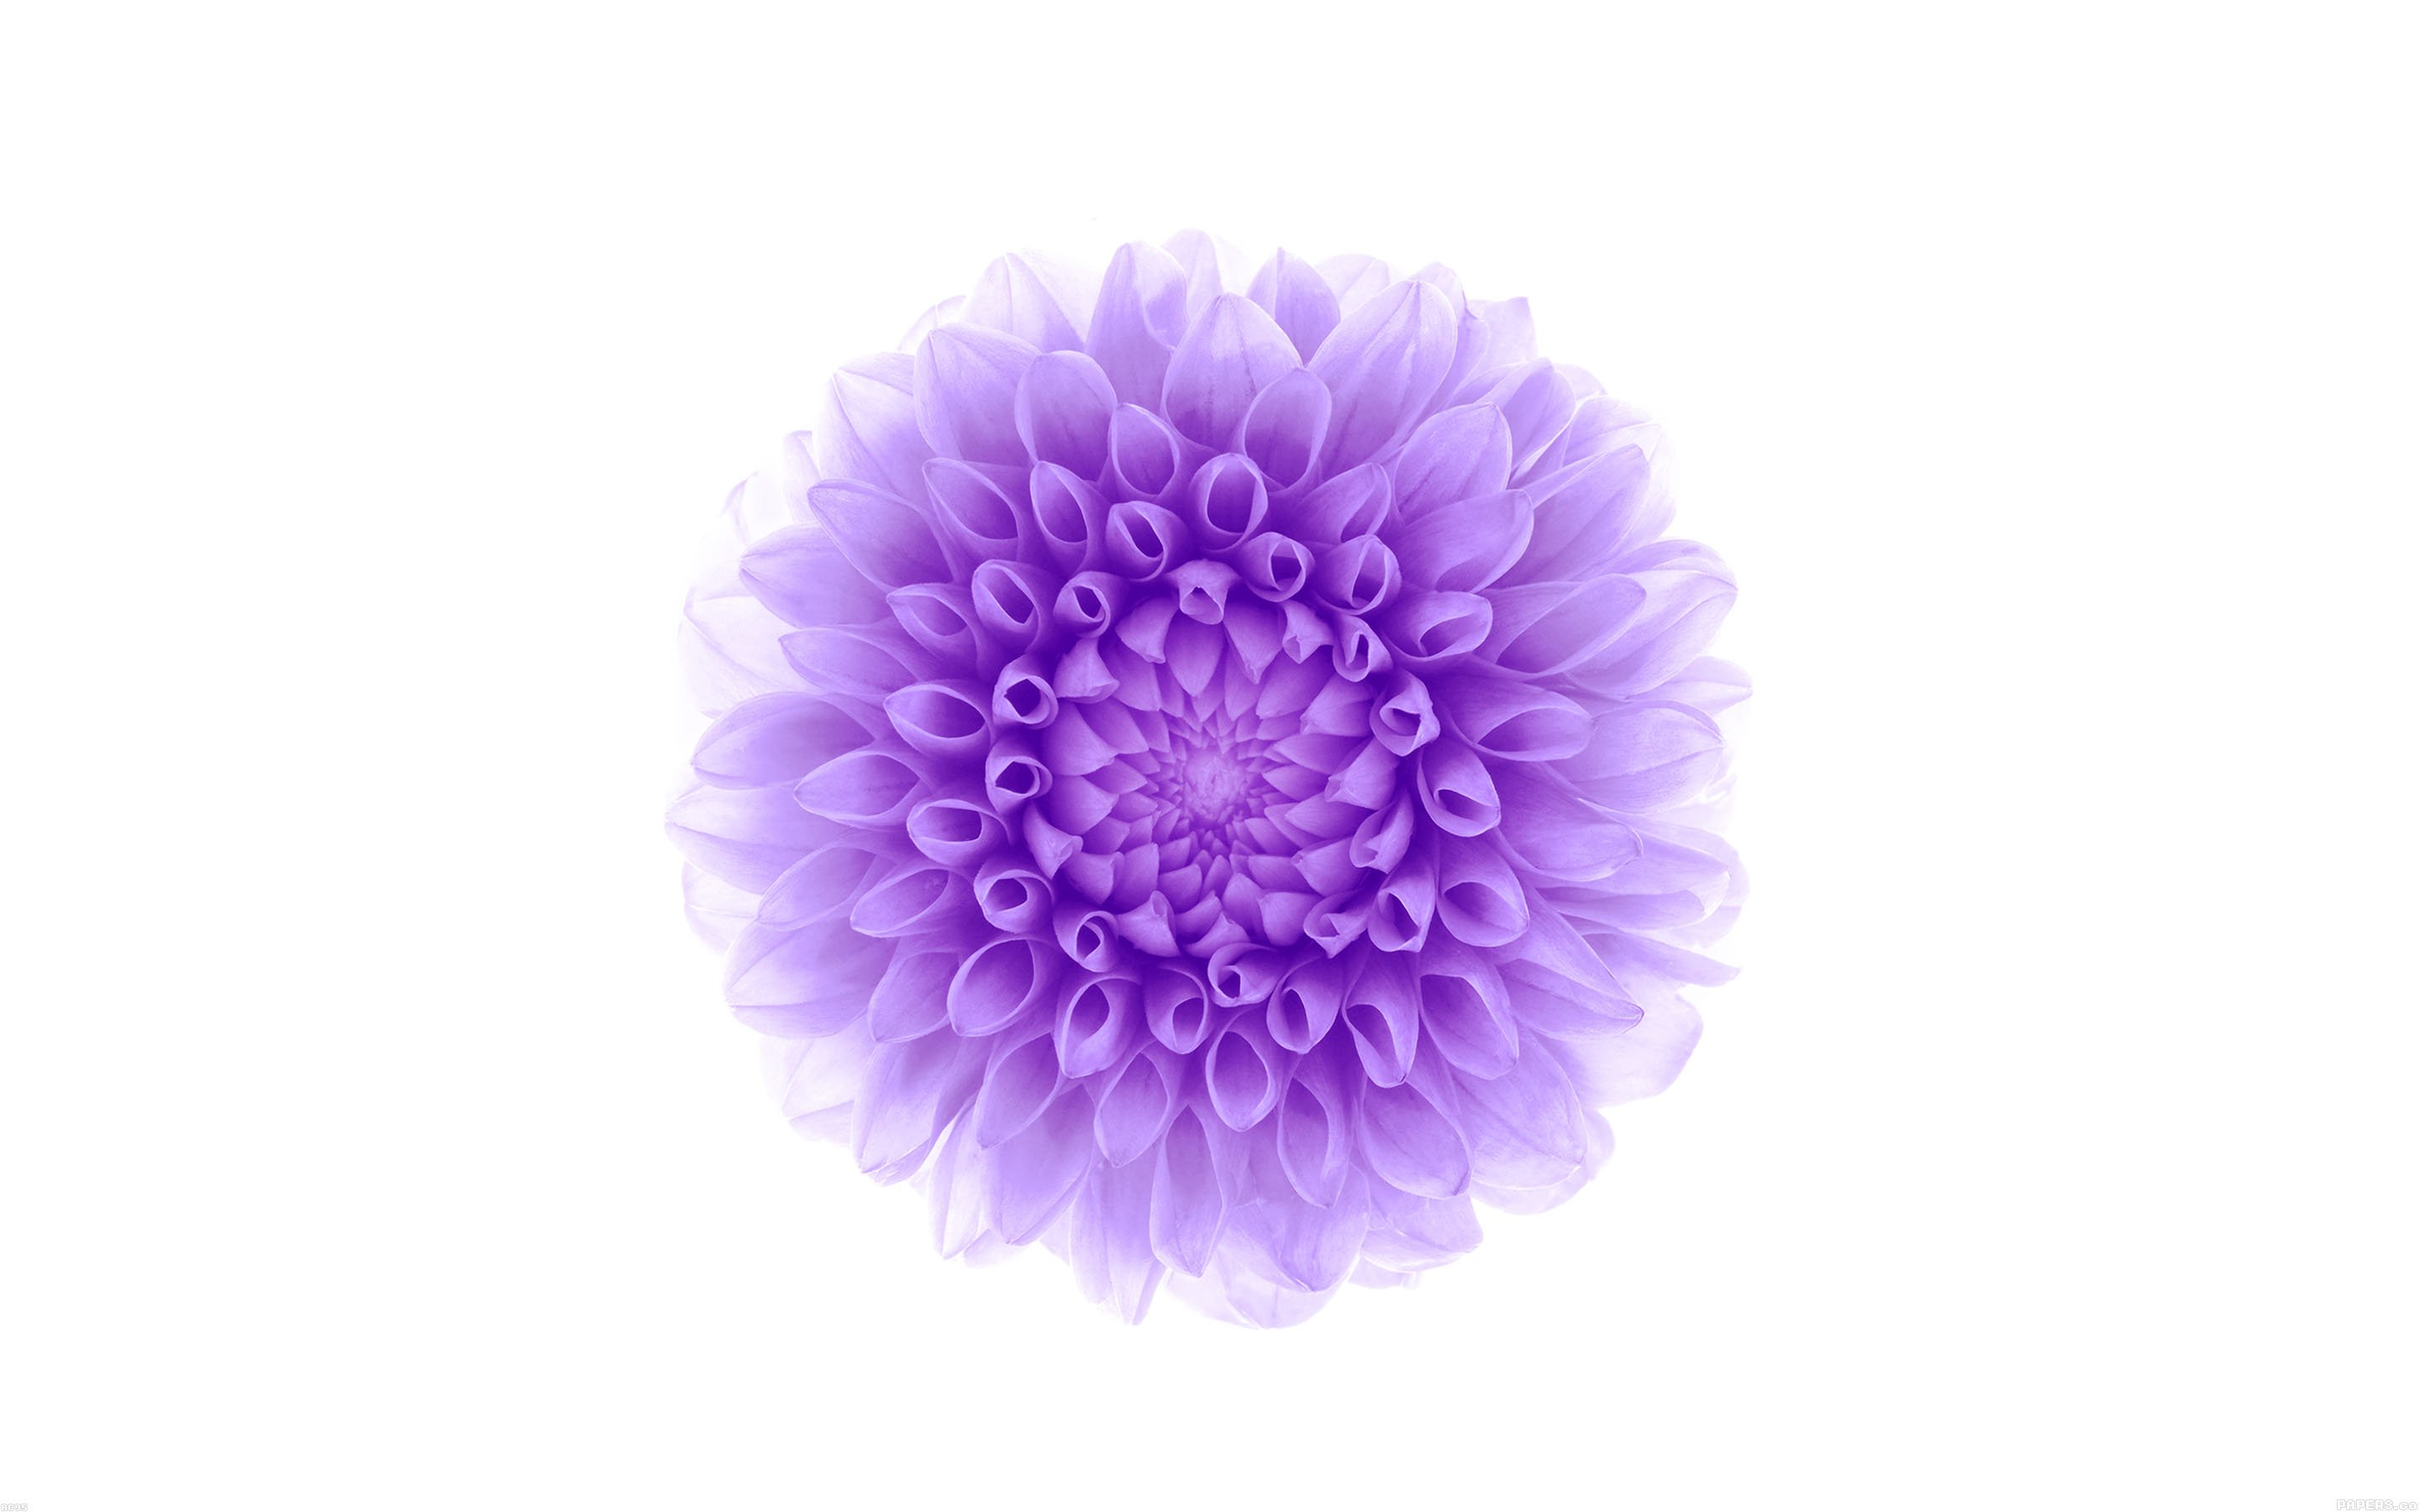 White background purple flower wallpaper 2880x1800 for Purple and white wallpaper